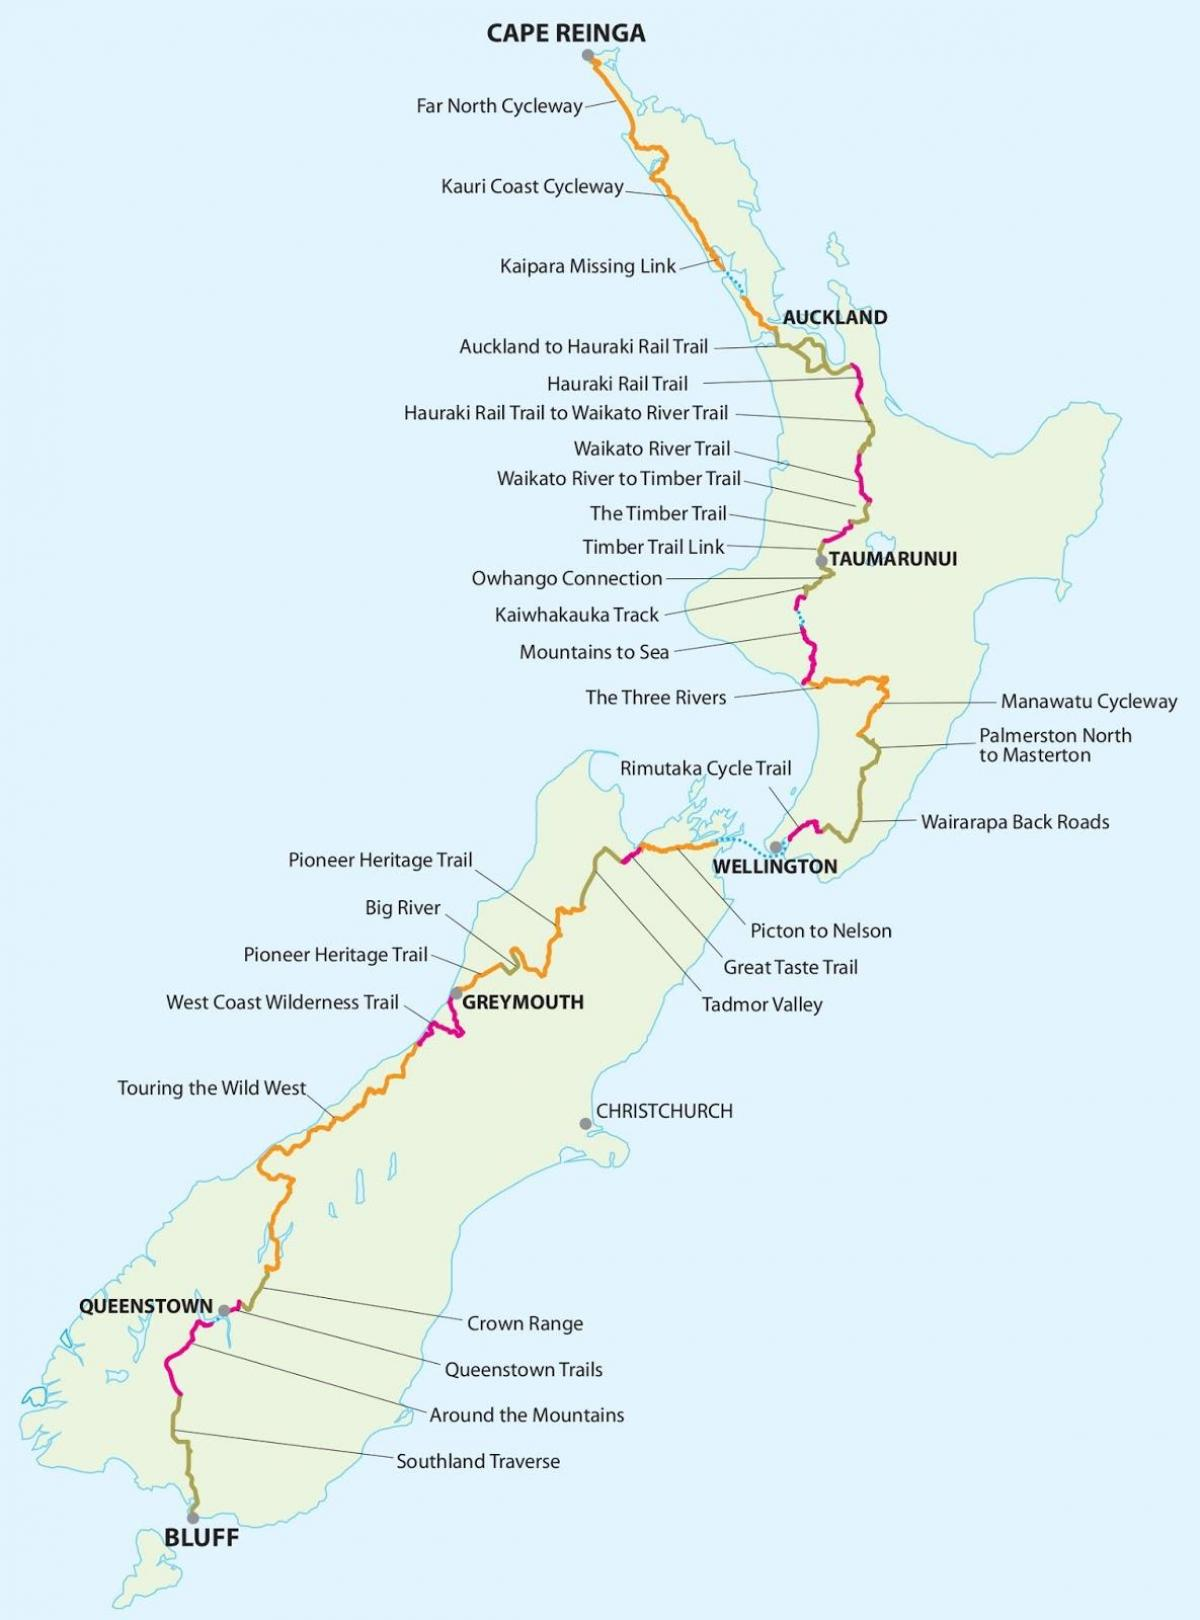 New zealand cycle trail map - Map of new zealand cycle trail ... on jefferson trail map, franconia ridge trail map, nelson trail map, ethan pond trail map, bristol trail map, china trail map, peru trail map, victoria trail map, turkey trail map, austria trail map, galehead trail map, tobago trail map, germany trail map, flume trail map, mexico trail map, fredericton trail map, liberty trail map, jamaica trail map,